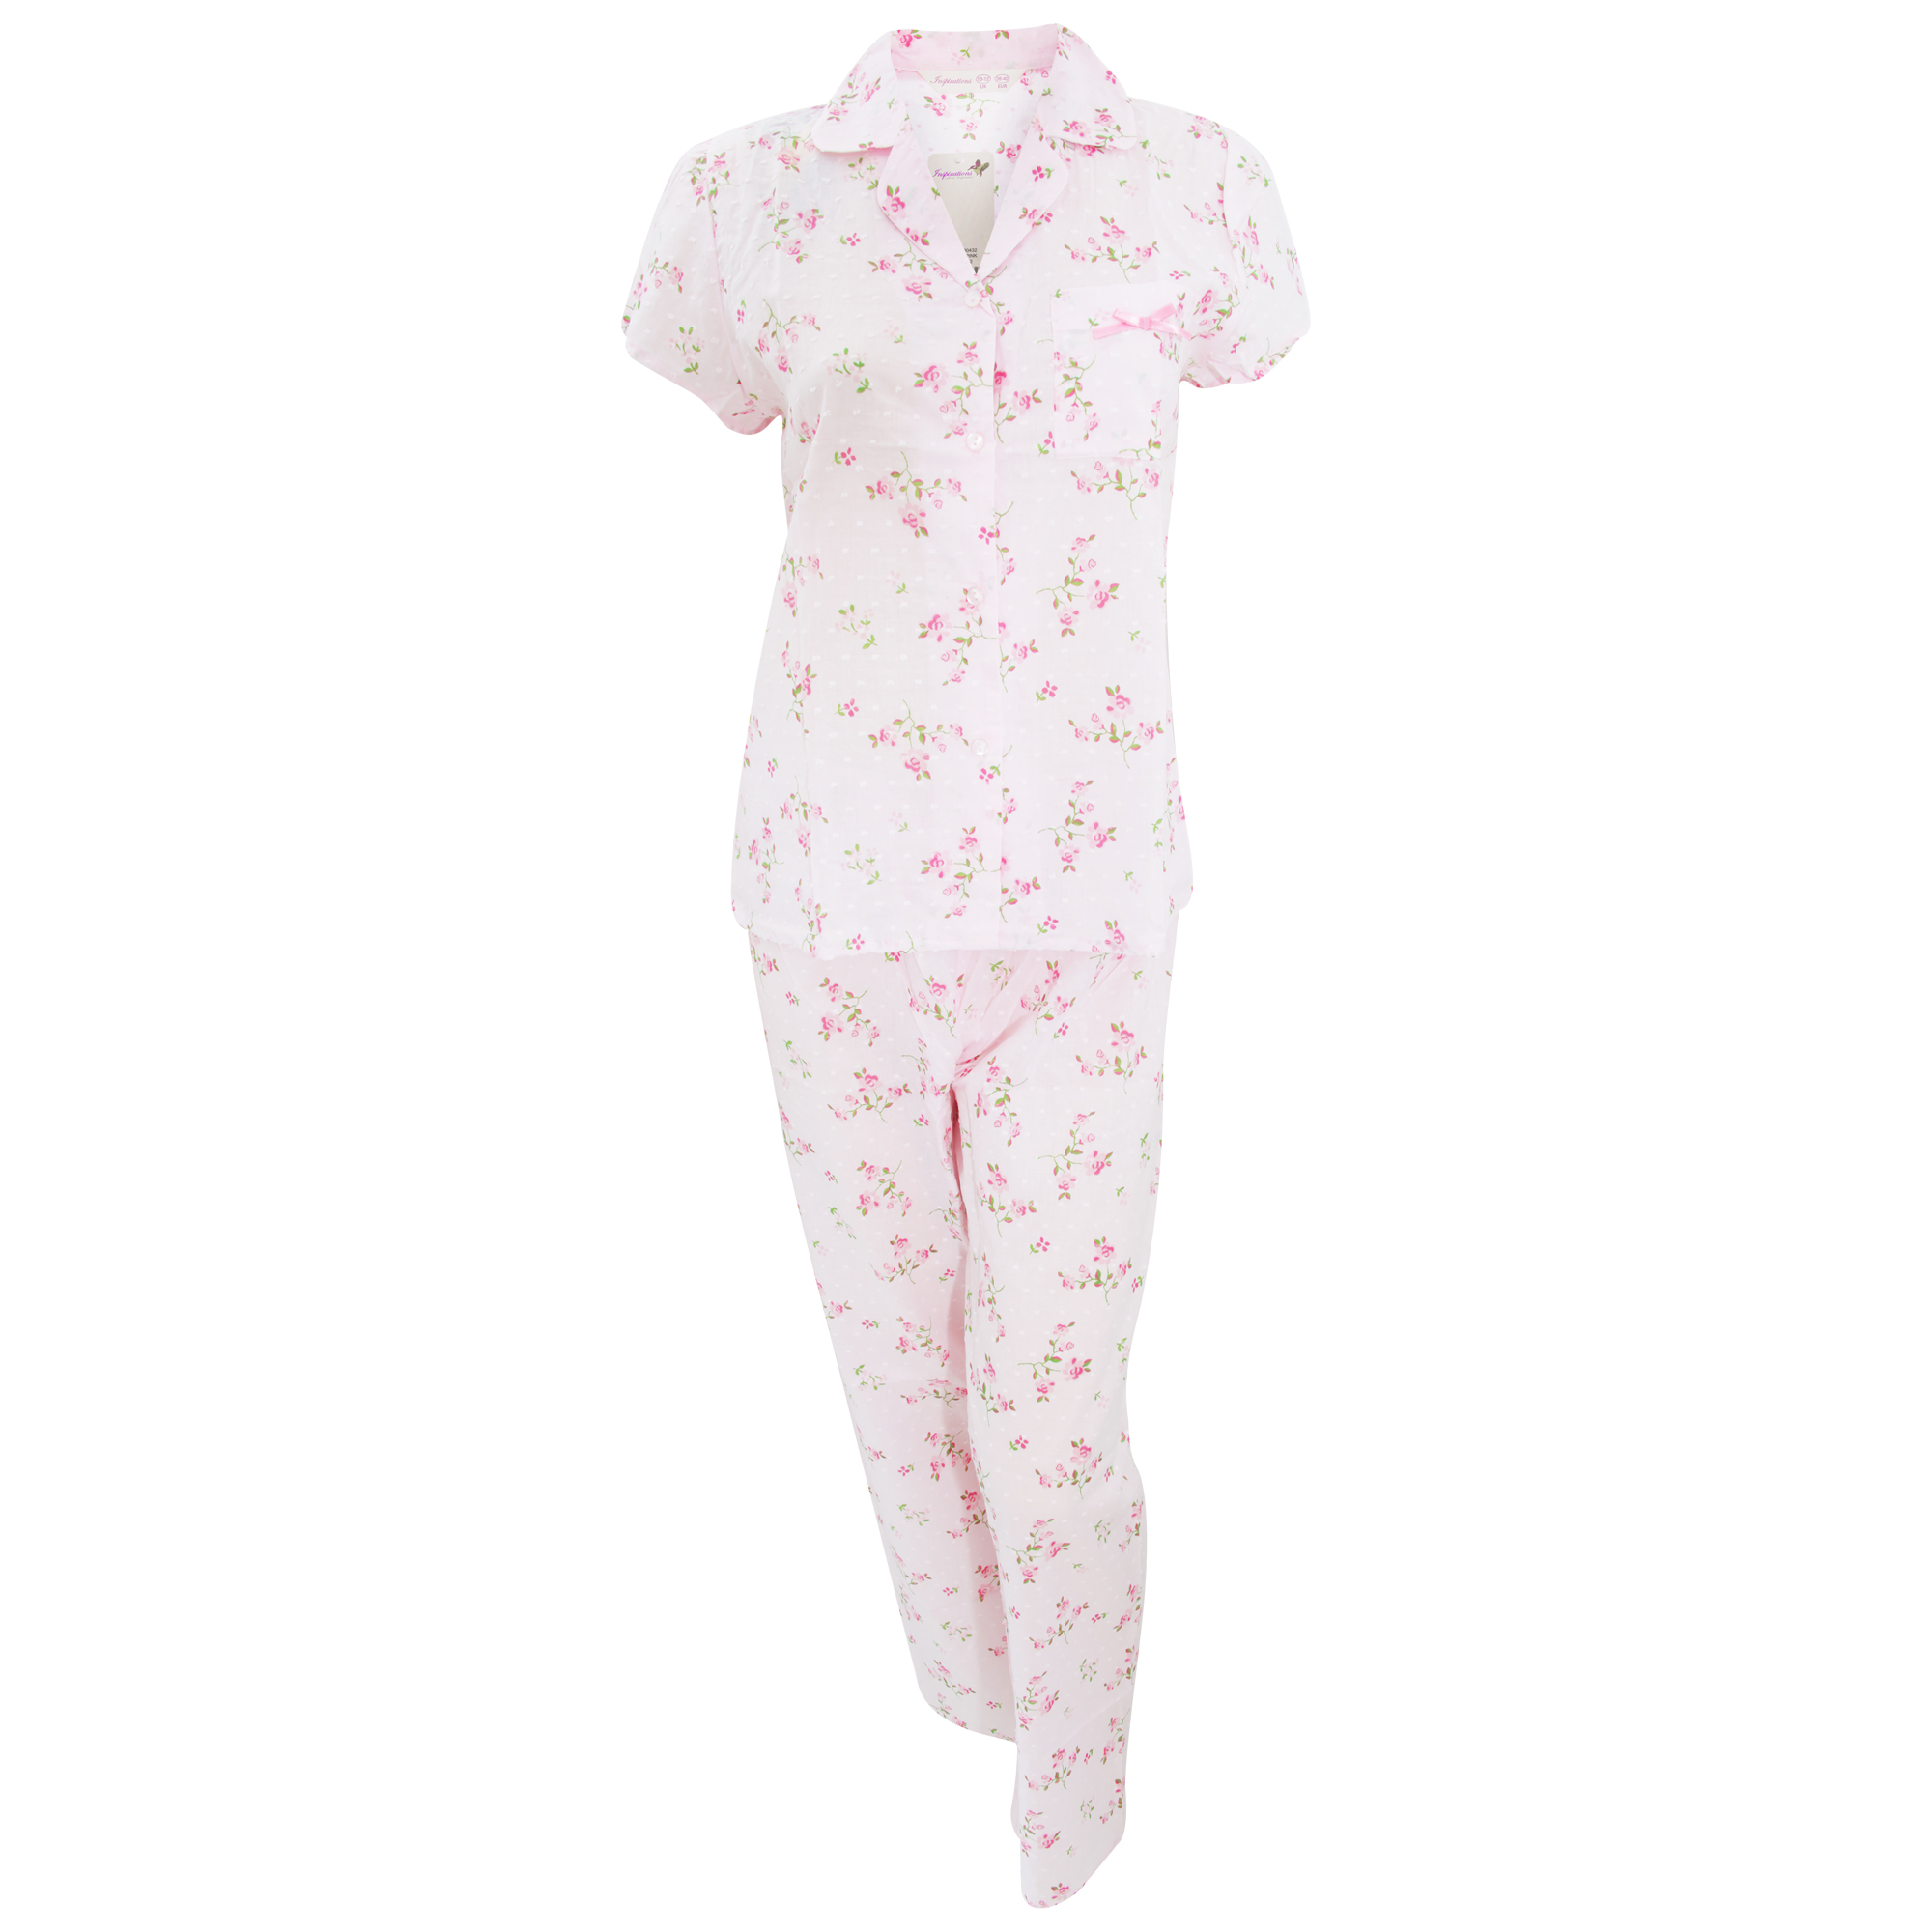 Aria Womens Short Sleeve Pajama Set Pink Floral Sz 2X - NWT. Brand New. $ Buy It Now. Free Shipping. Womens Pajamas Sets Summer Short Sleeve Cotton Cartoon Print Nightwear Sleepwear. New (Other) $ to $ Buy It Now. Free Shipping. Buy 1, get 1 6% off.